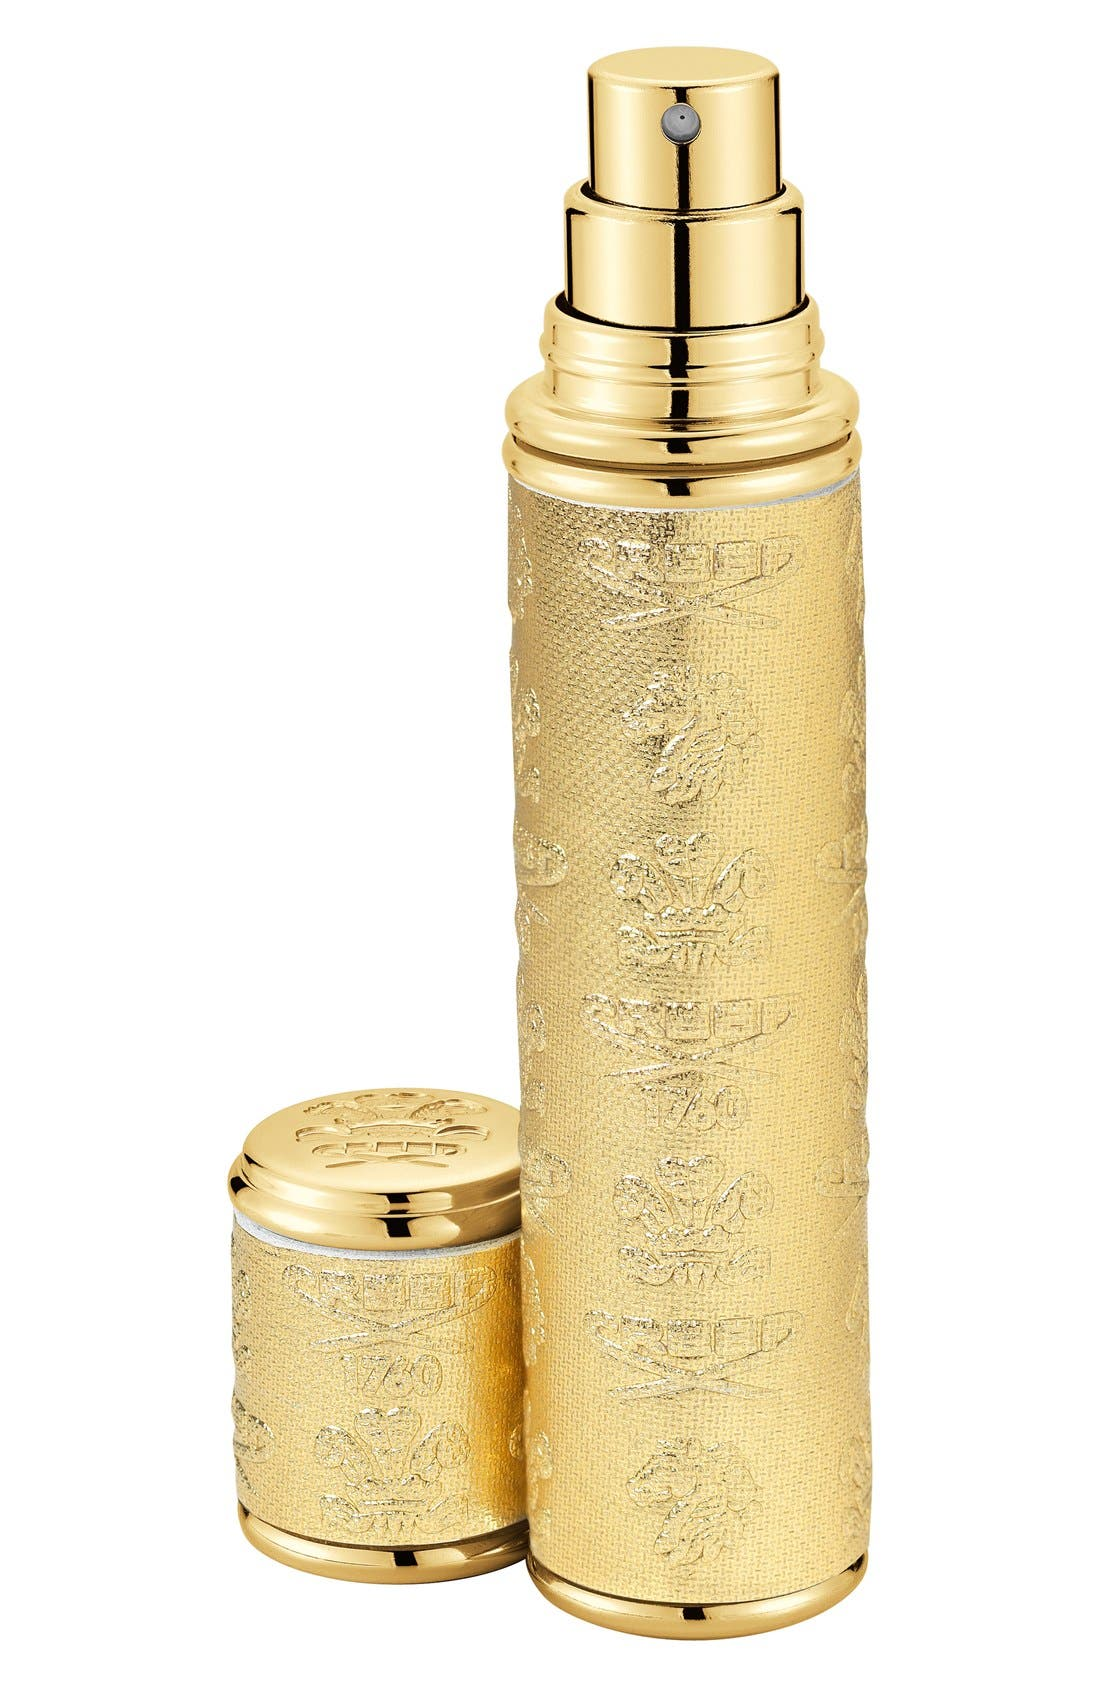 Gold with Gold Trim Leather Atomizer,                             Main thumbnail 1, color,                             NO COLOR